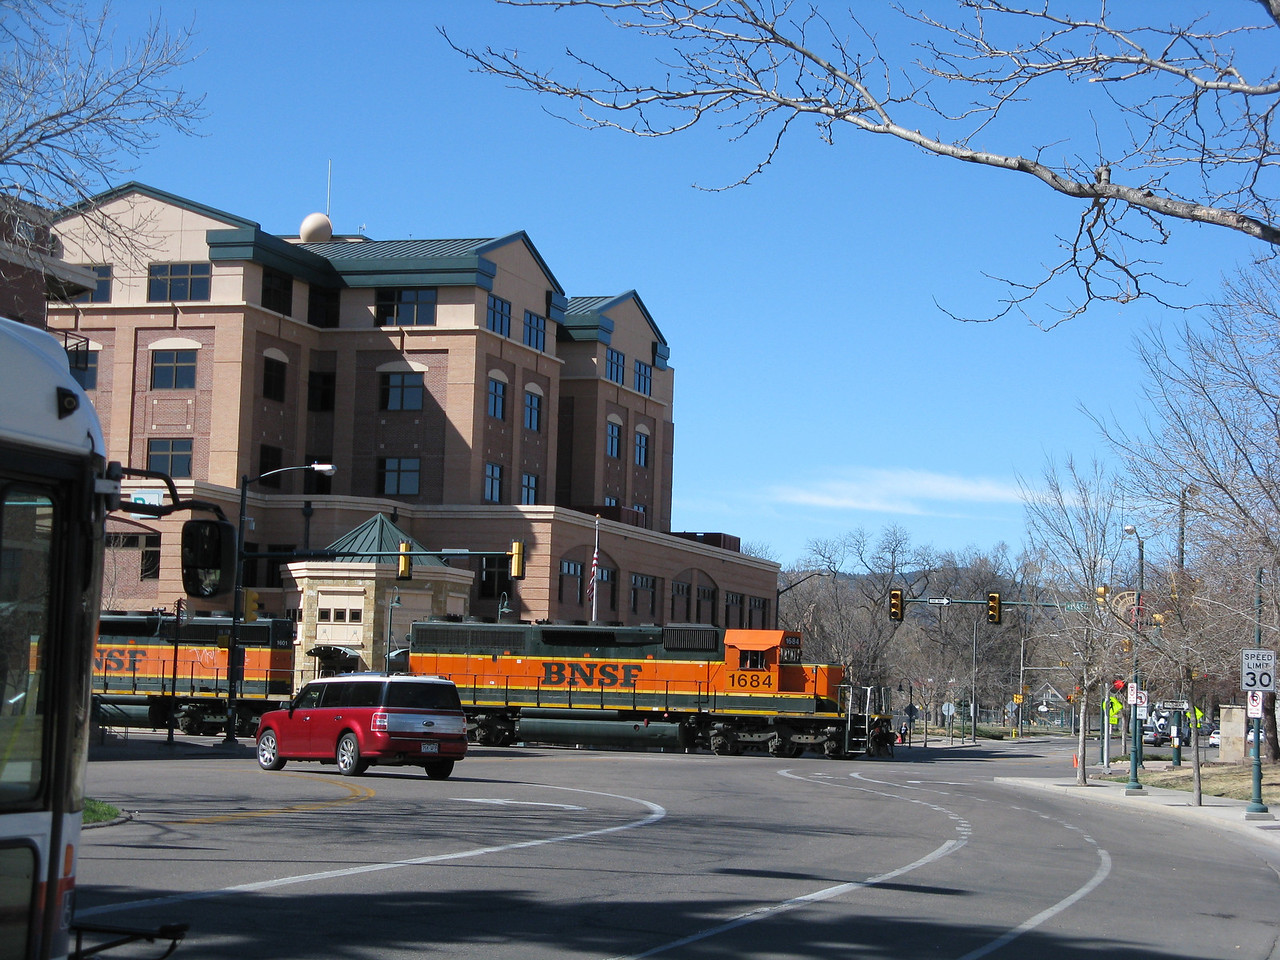 12-03-21 Ft Collins 019